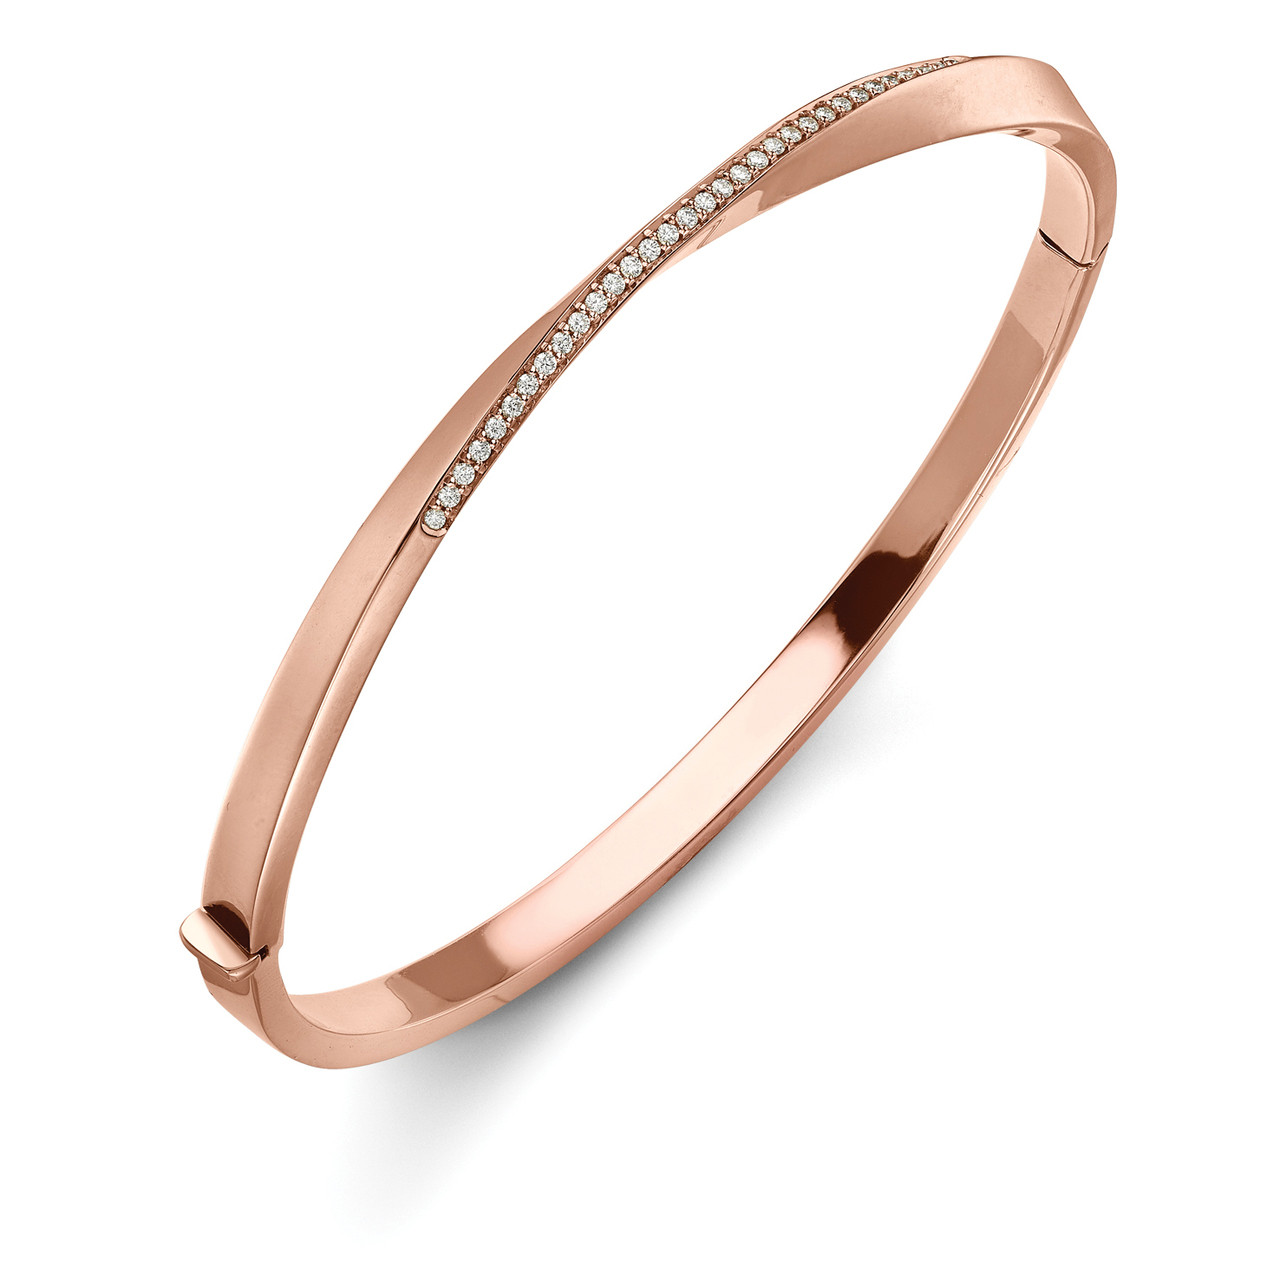 086471b317d60 18ct Rose Gold, Diamond Twist Bangle